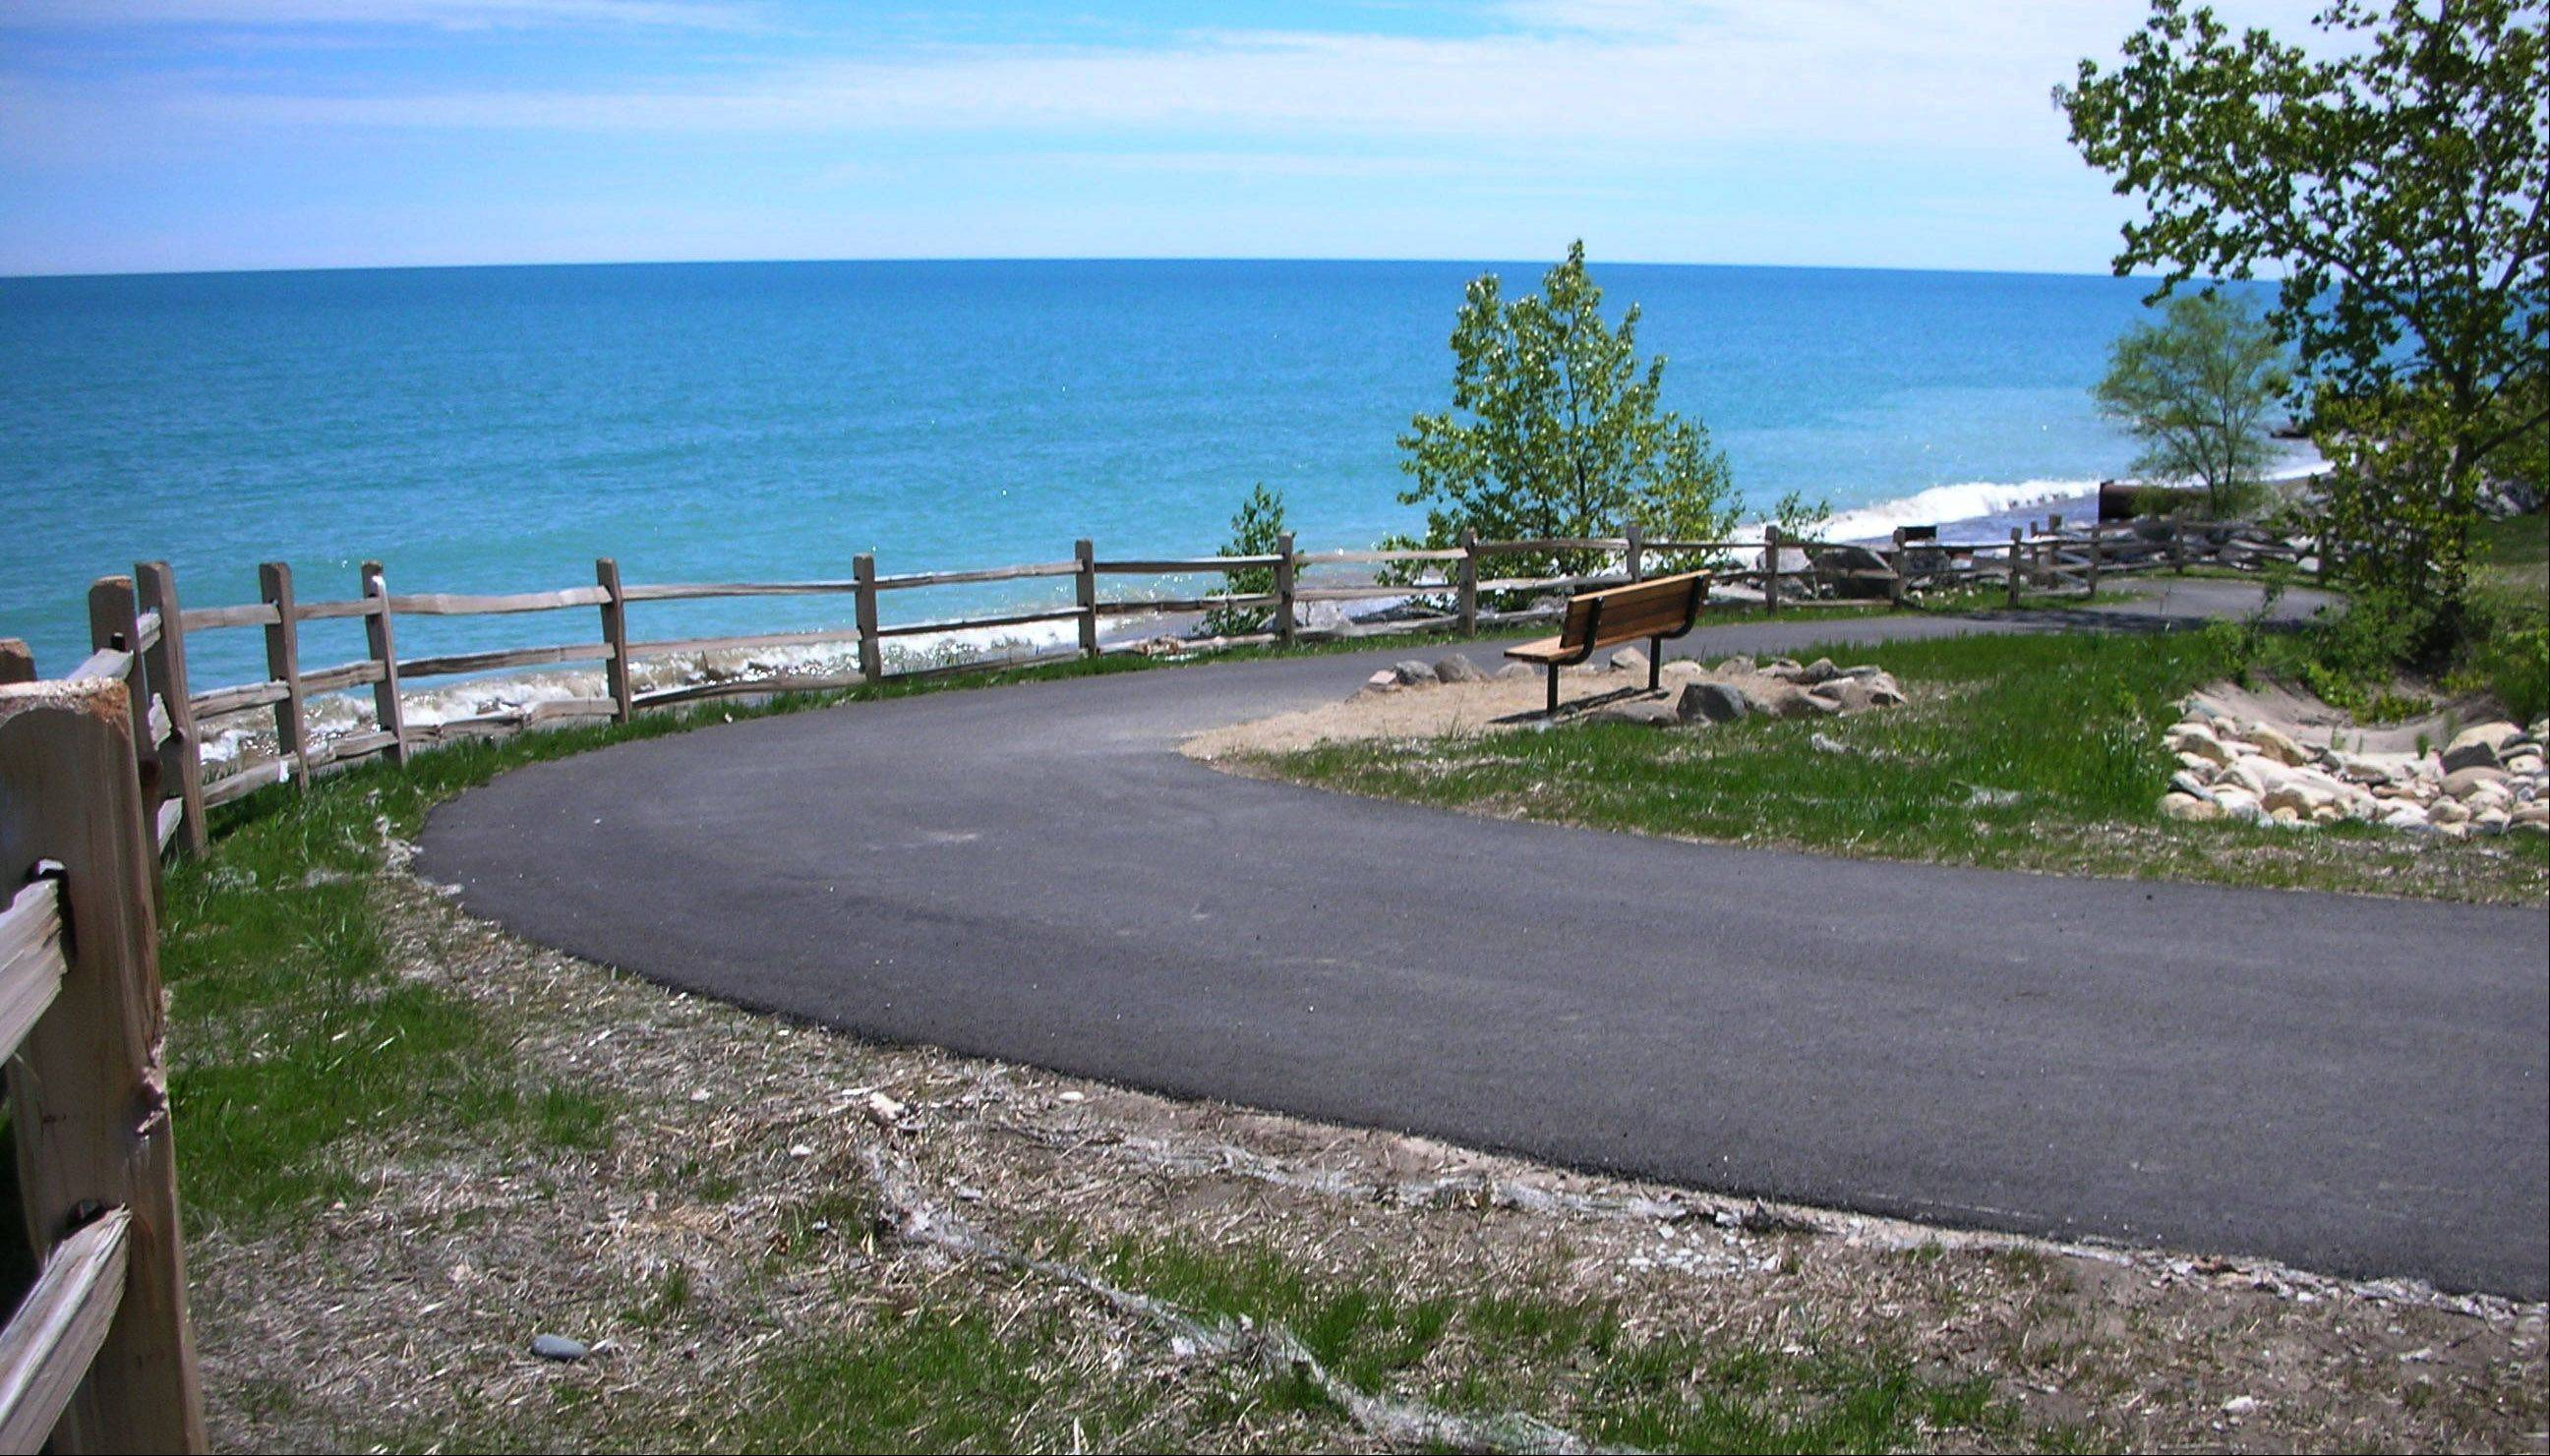 Open space plans to proceed for Fort Sheridan